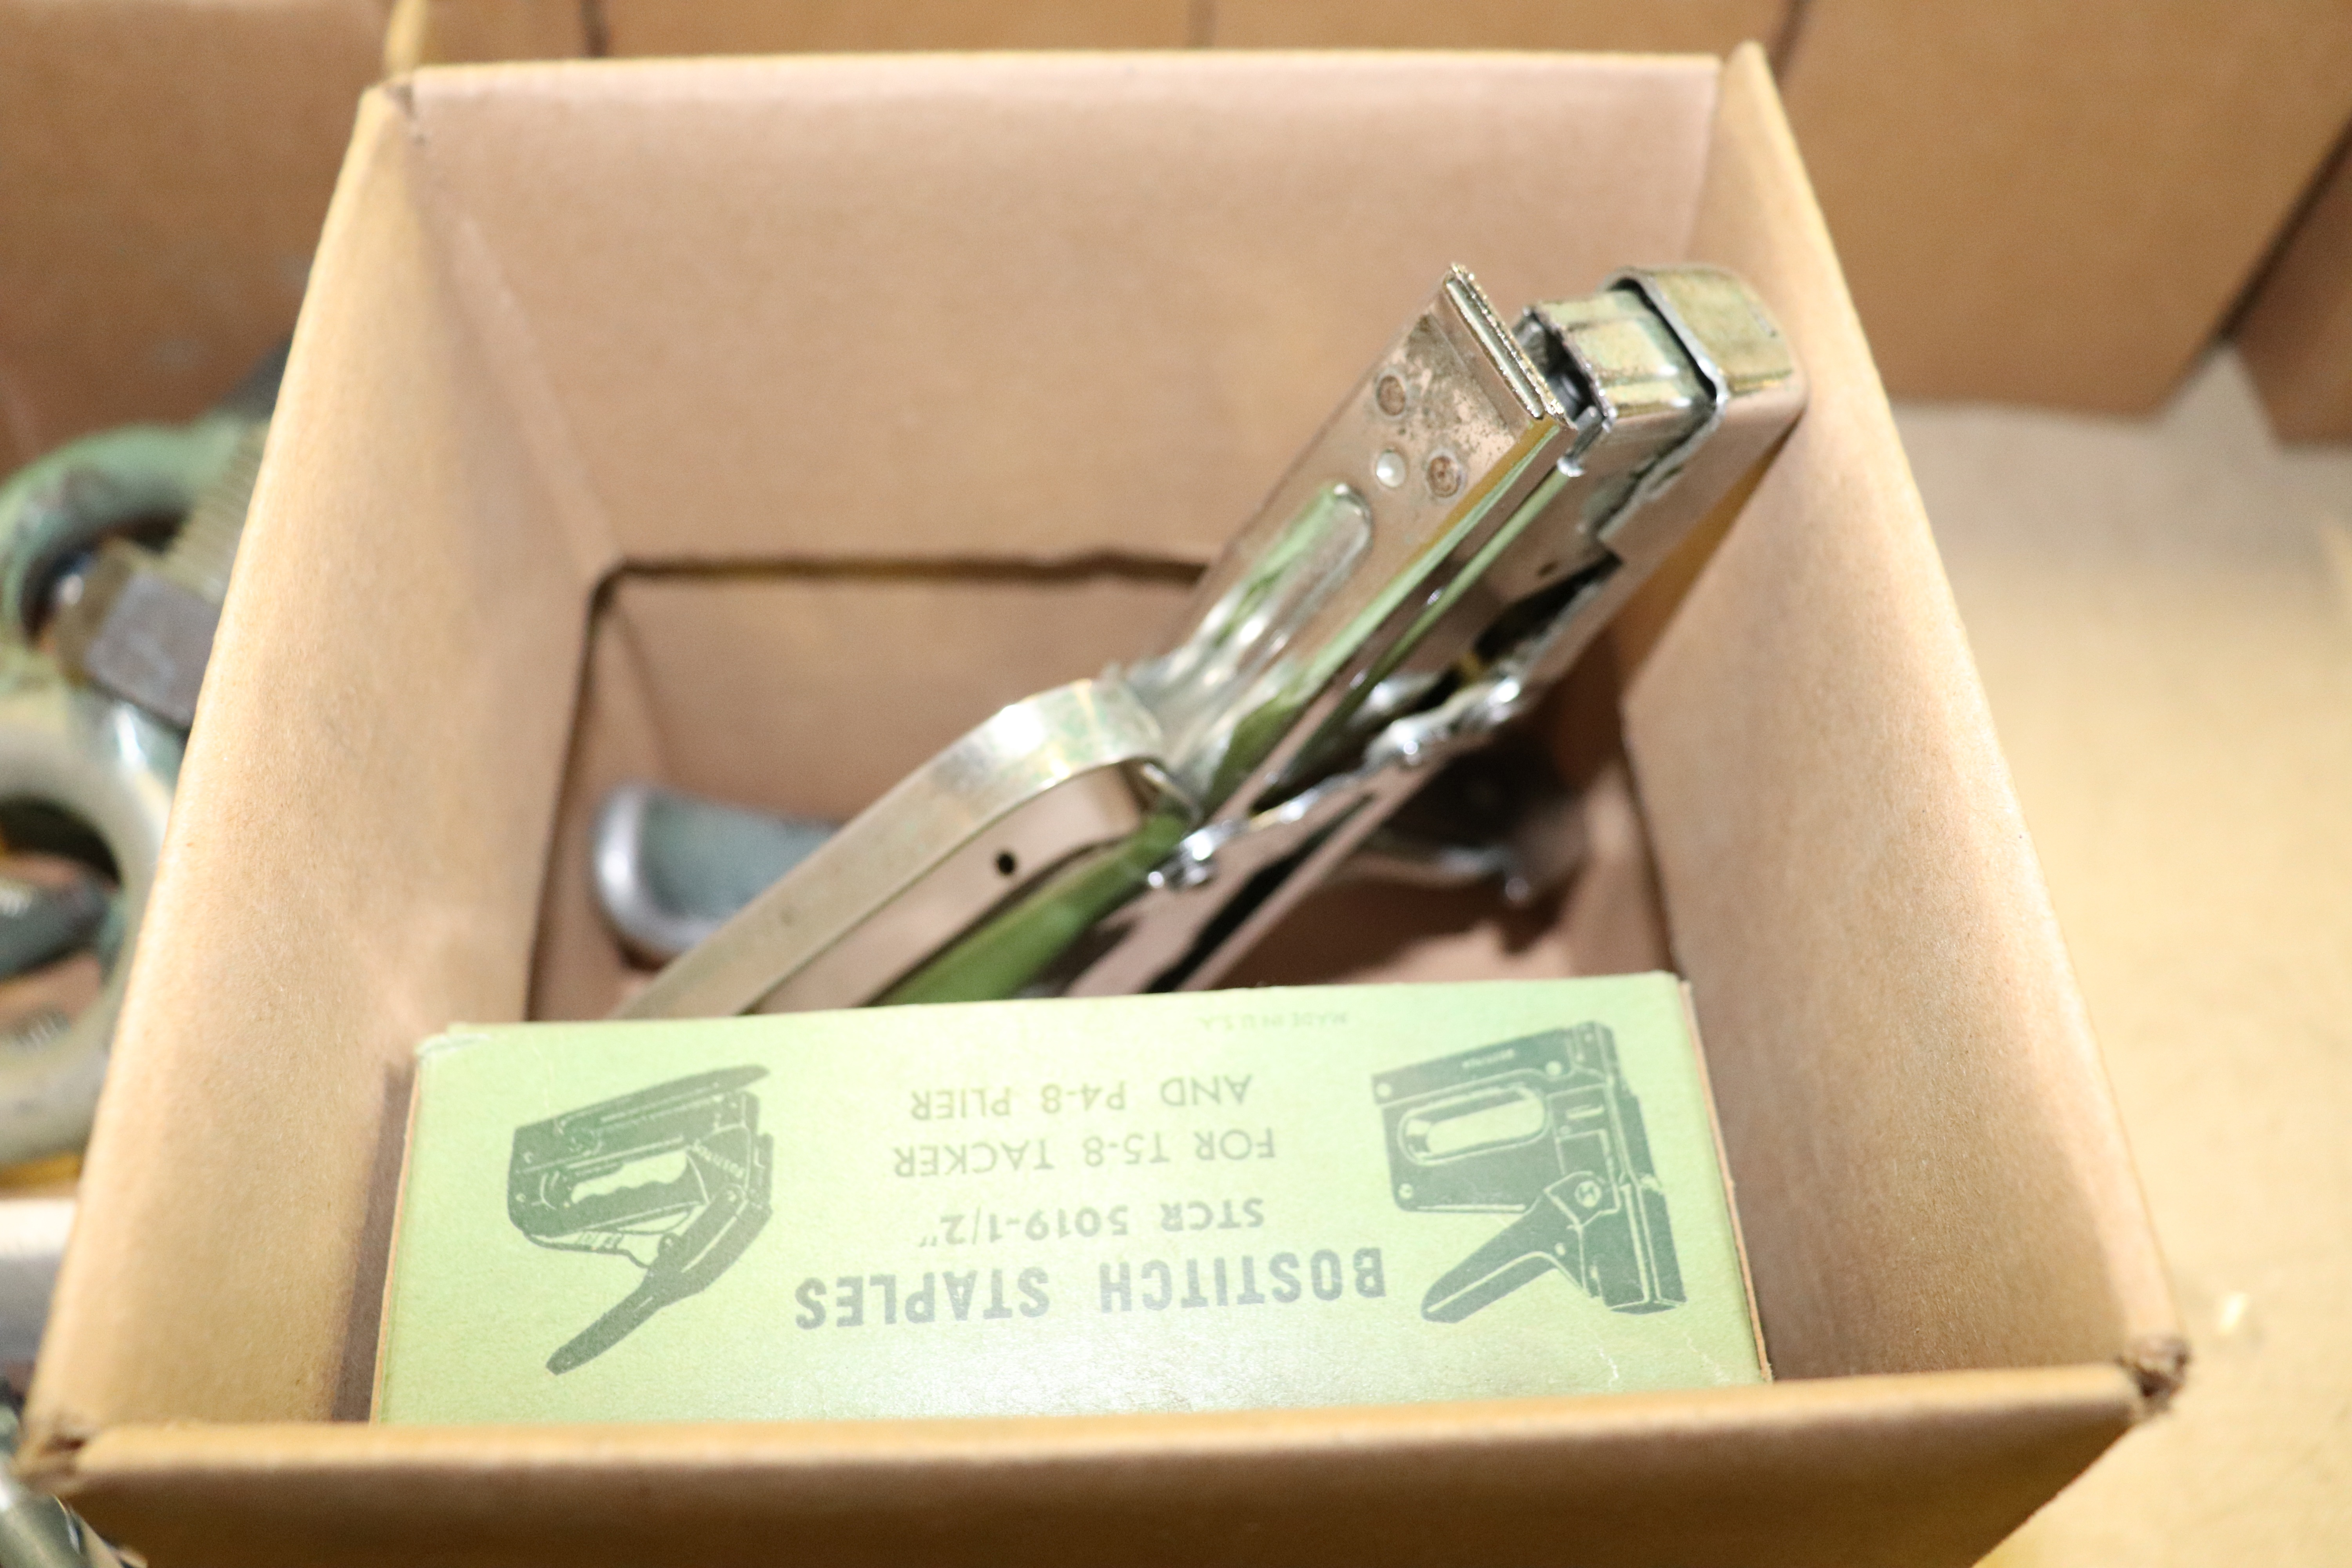 Lot 9 - Staplers and an opener